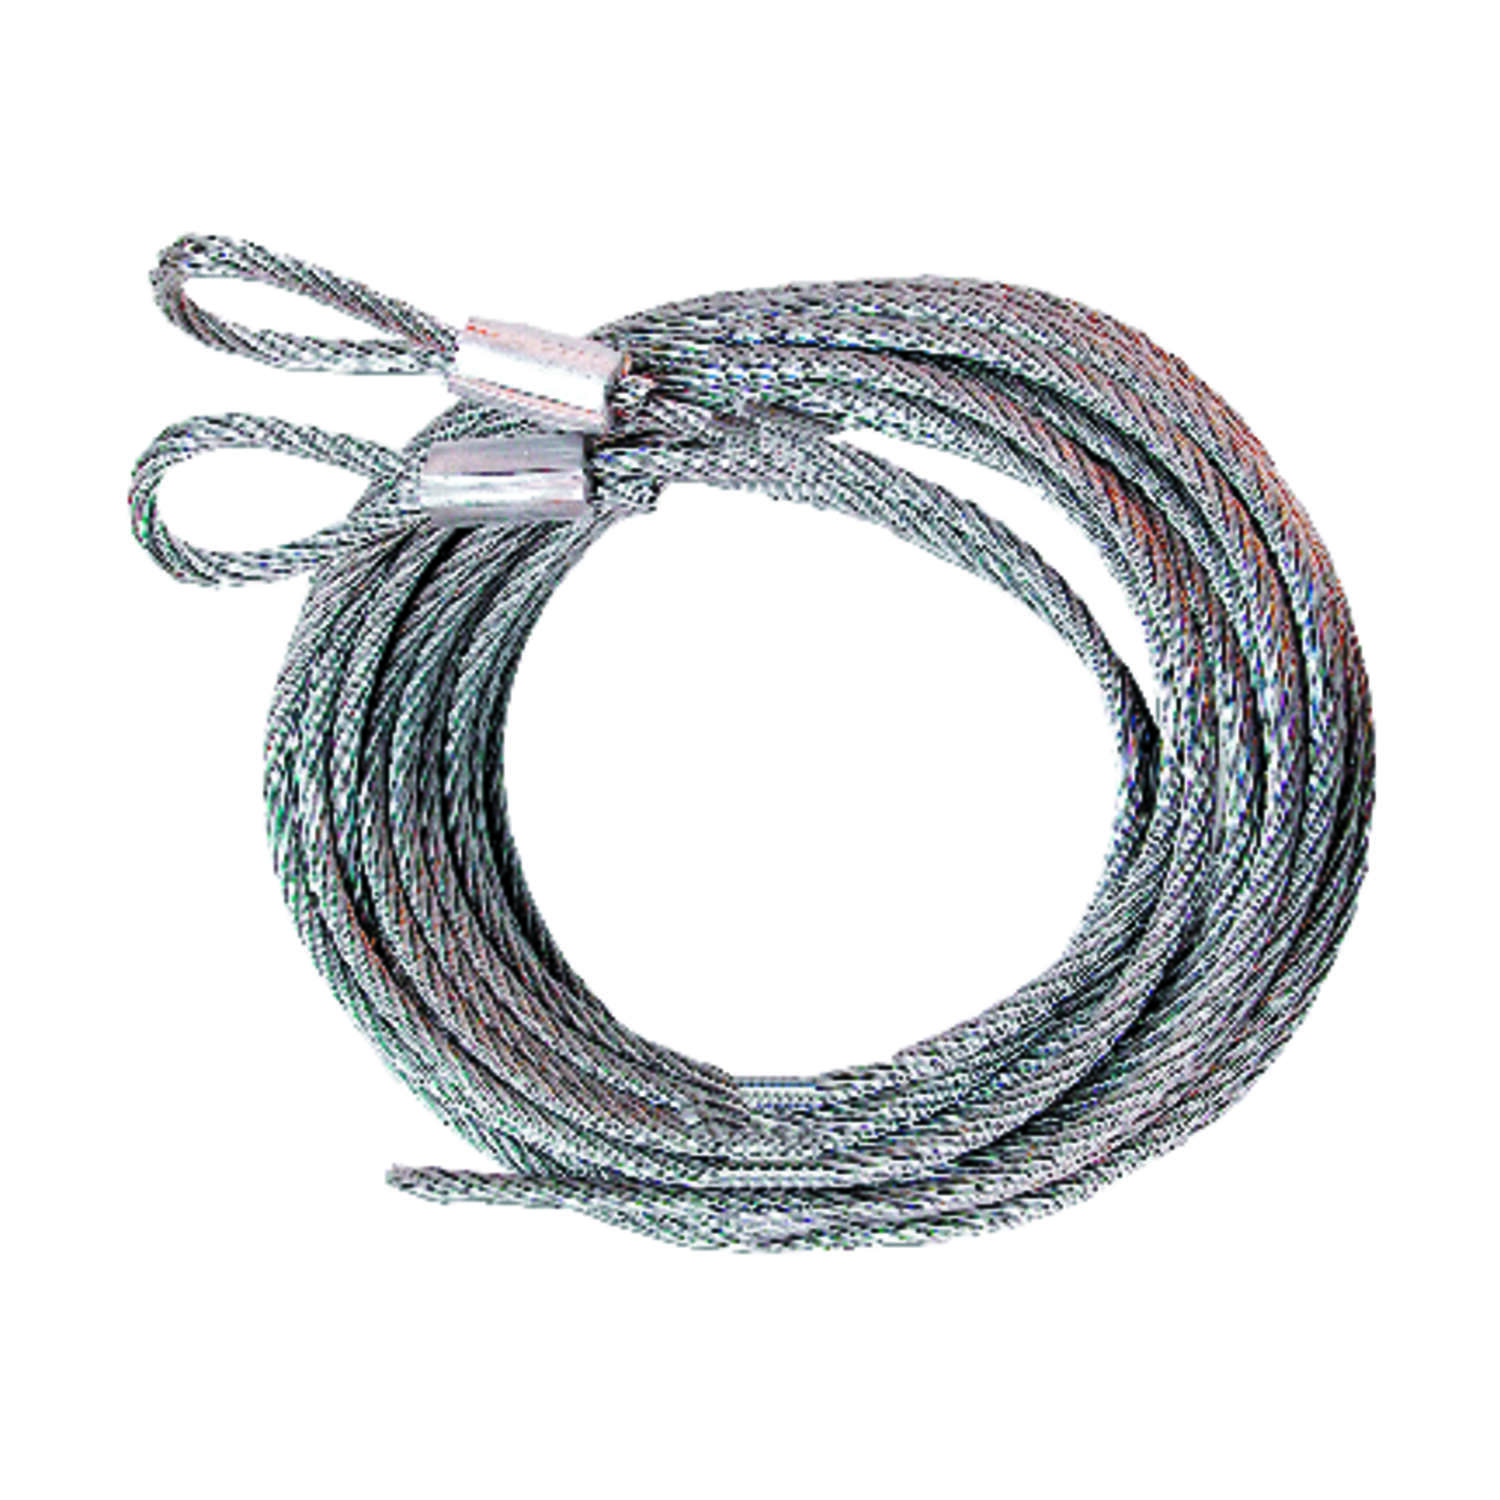 Prime-Line  5.75 in. W x 12 ft. L x 1/8 in. Dia. Carbon Steel  Extension Cables